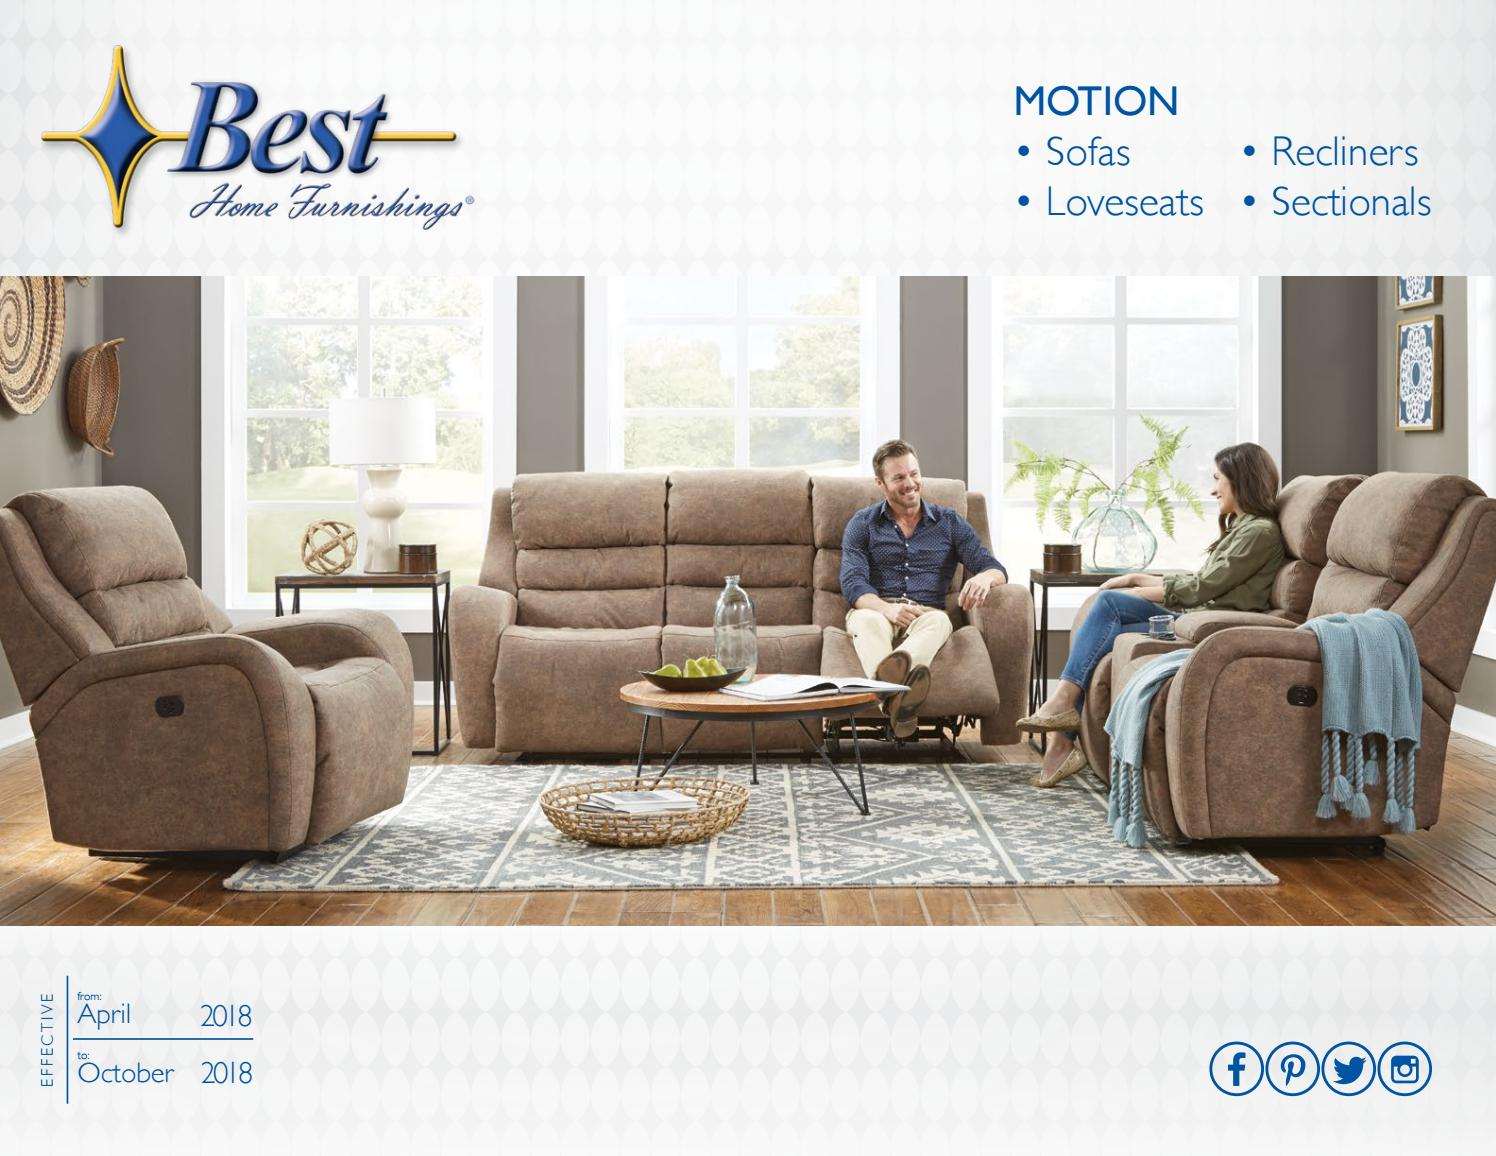 Best Home Furnishings Motion Catalog Spring 2018 by Best